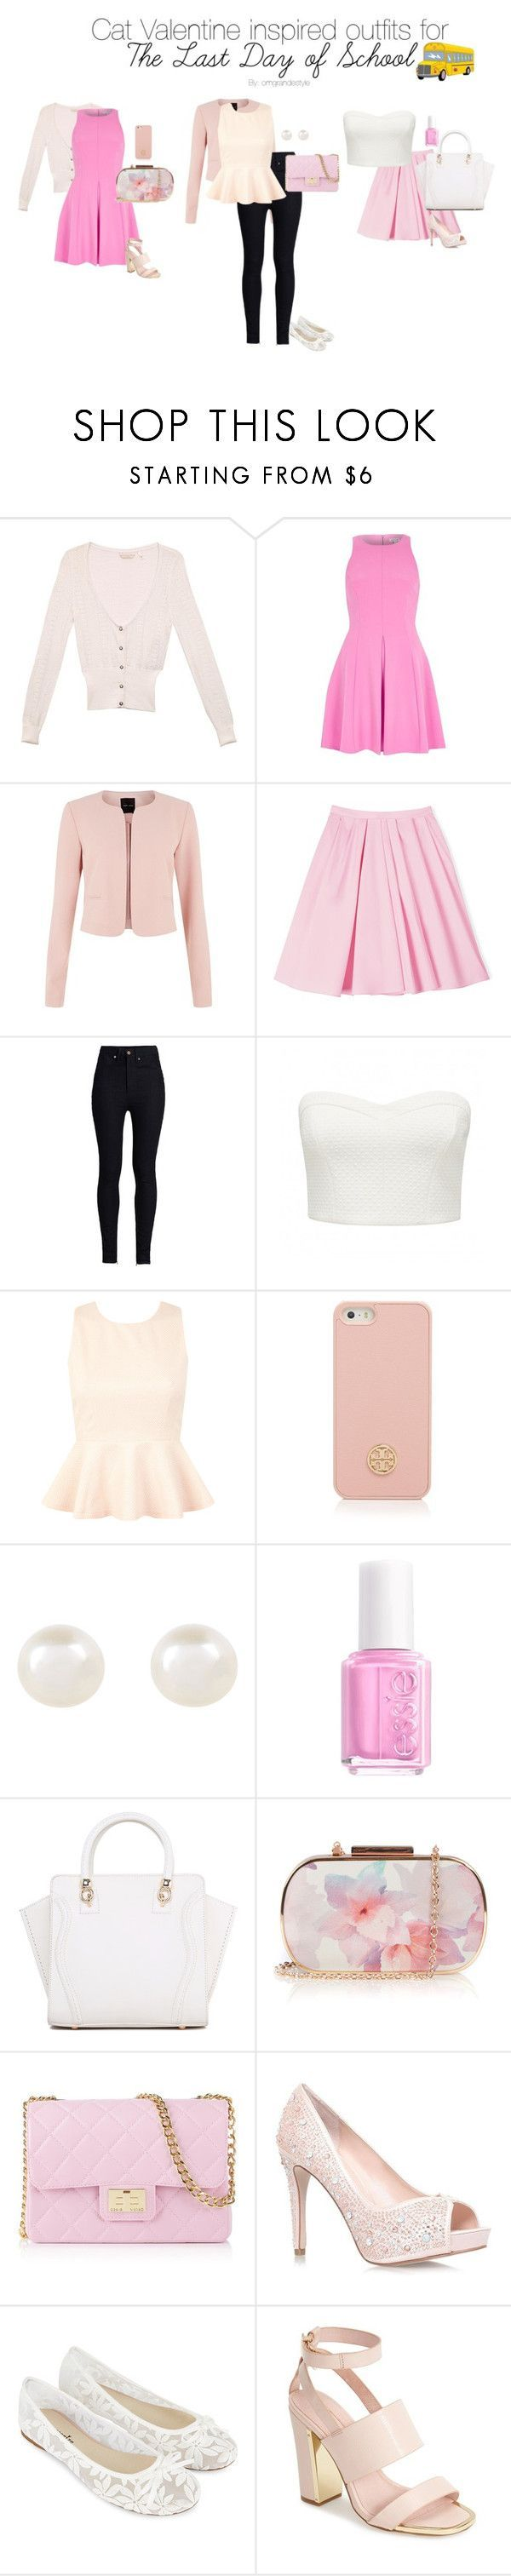 """Cat Valentine inspired outfits for The Last Day of School"" by dashinggrande :heart: liked on Polyvore featuring GUESS, River Island, Carven, Rodarte, Forever New, Miss Selfridge, Tory Burch, Accessorize, Essie and Oasis"